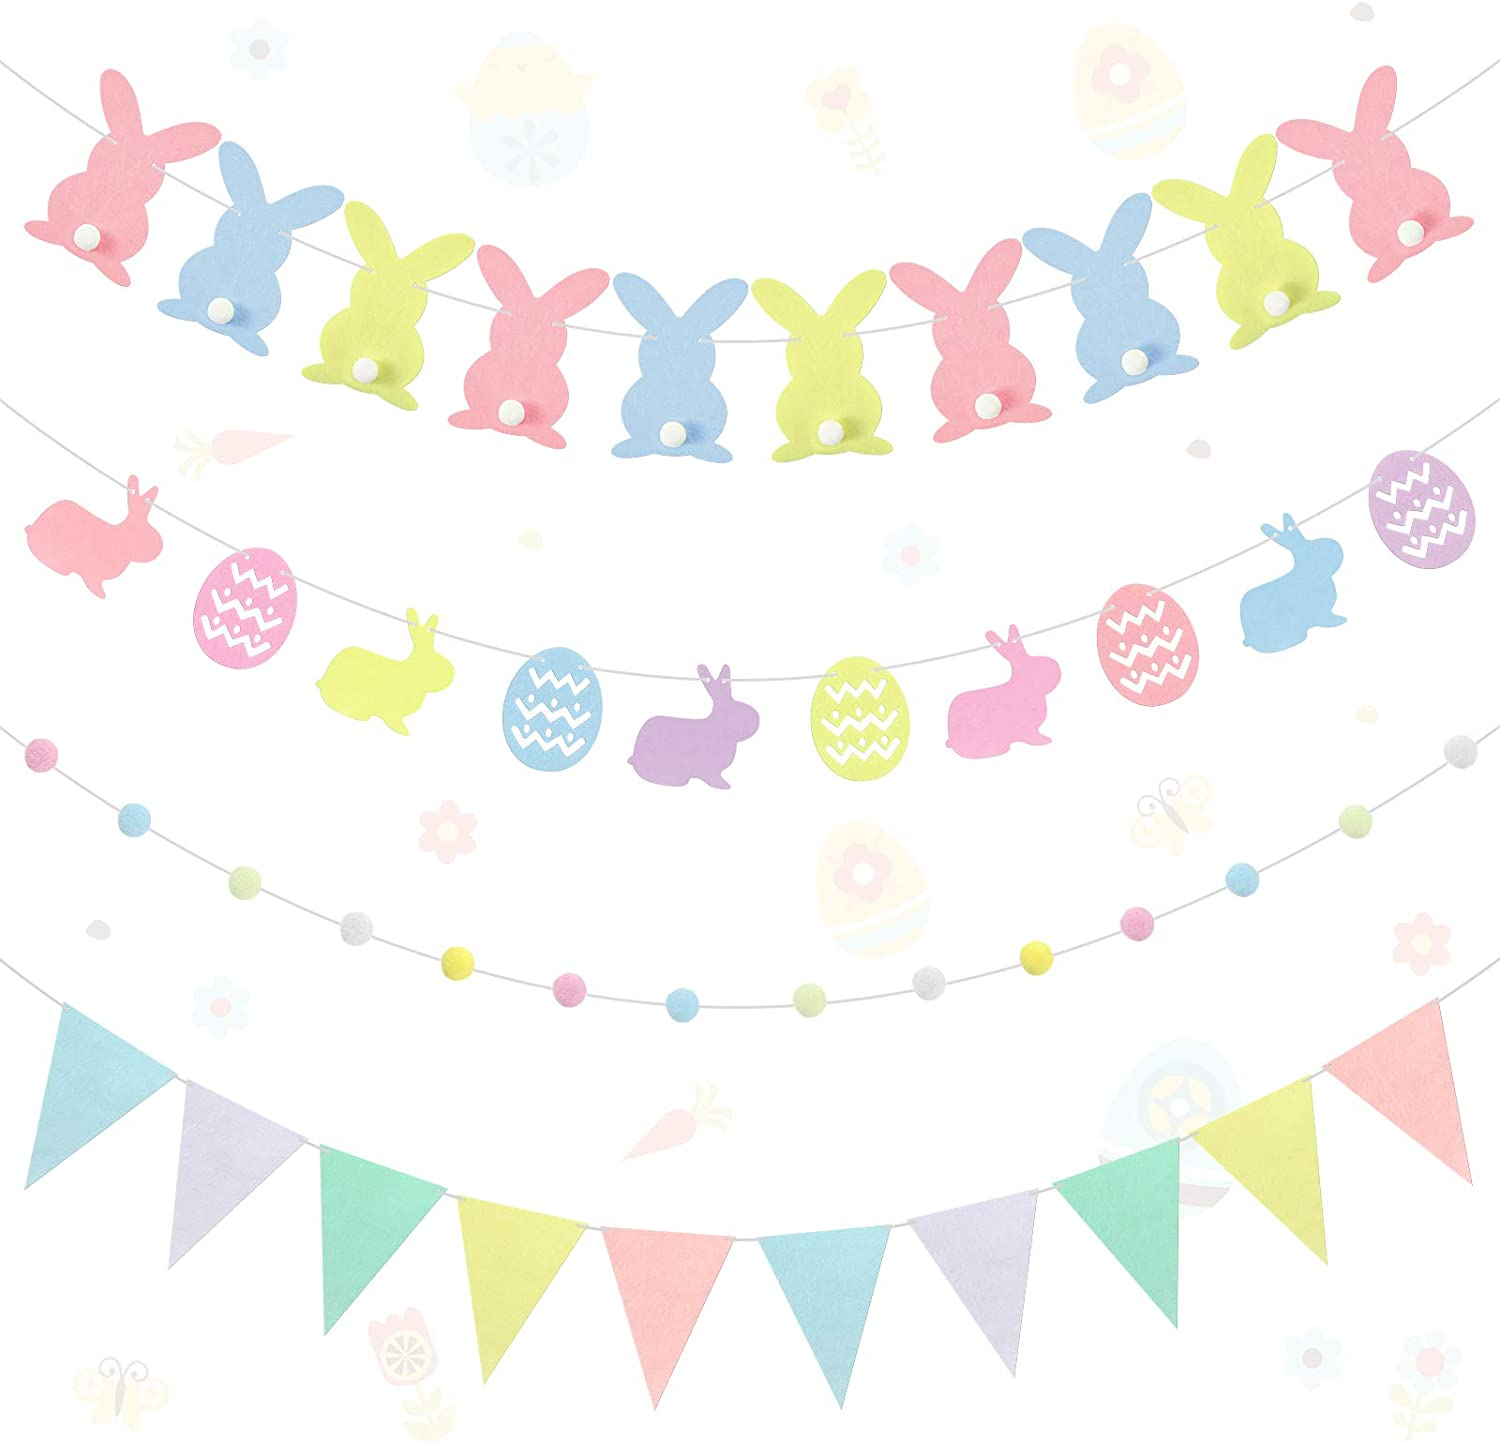 Pink Bunny Rabbit Bunting Bunny Bunny Banner Baby Shower Bunny Party Decoration Pink Rose Birthday